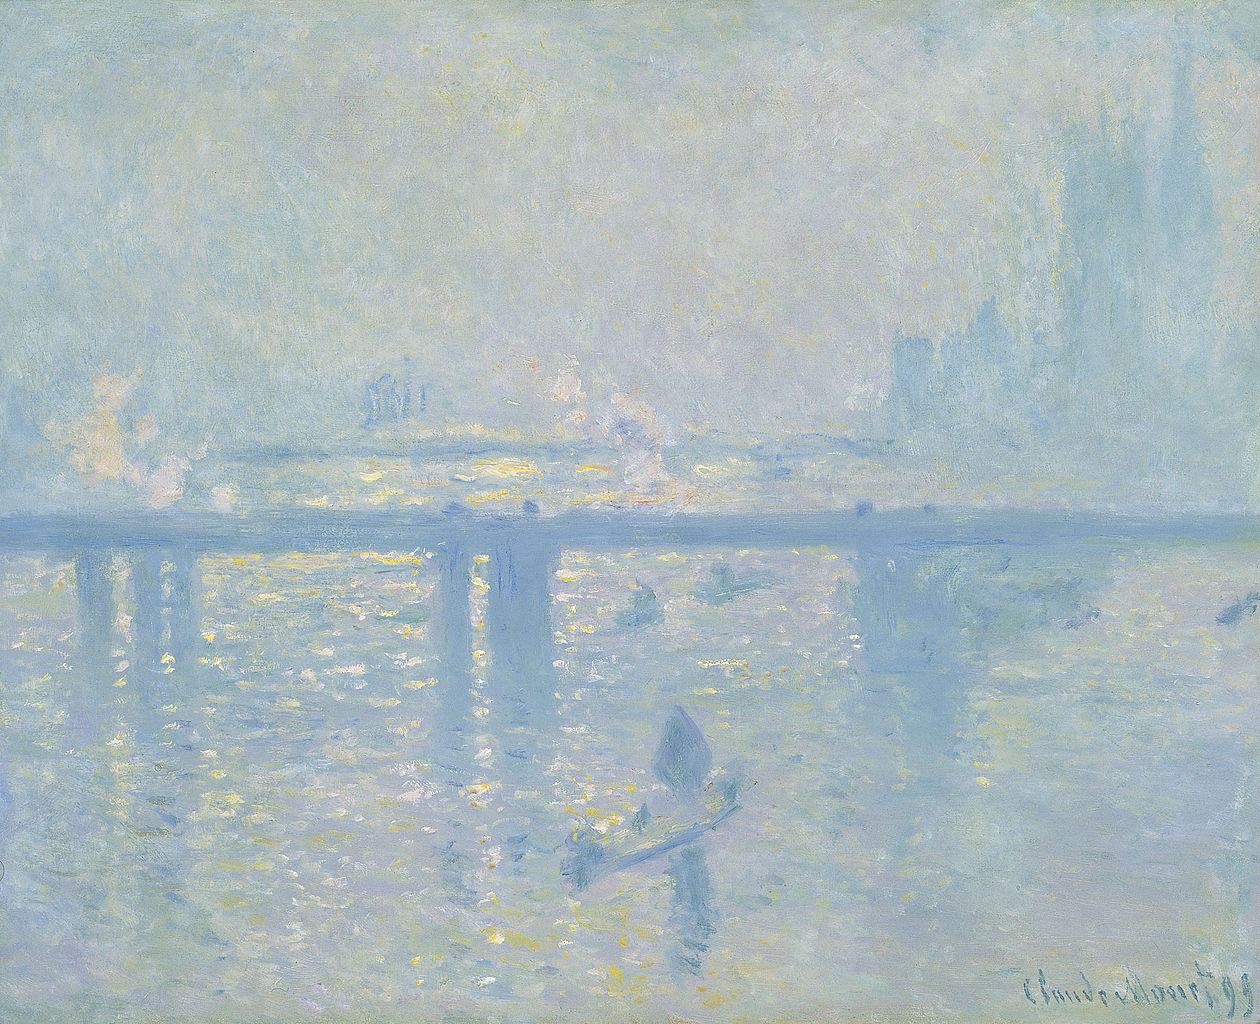 Claude Monet – Charing Cross Bridge